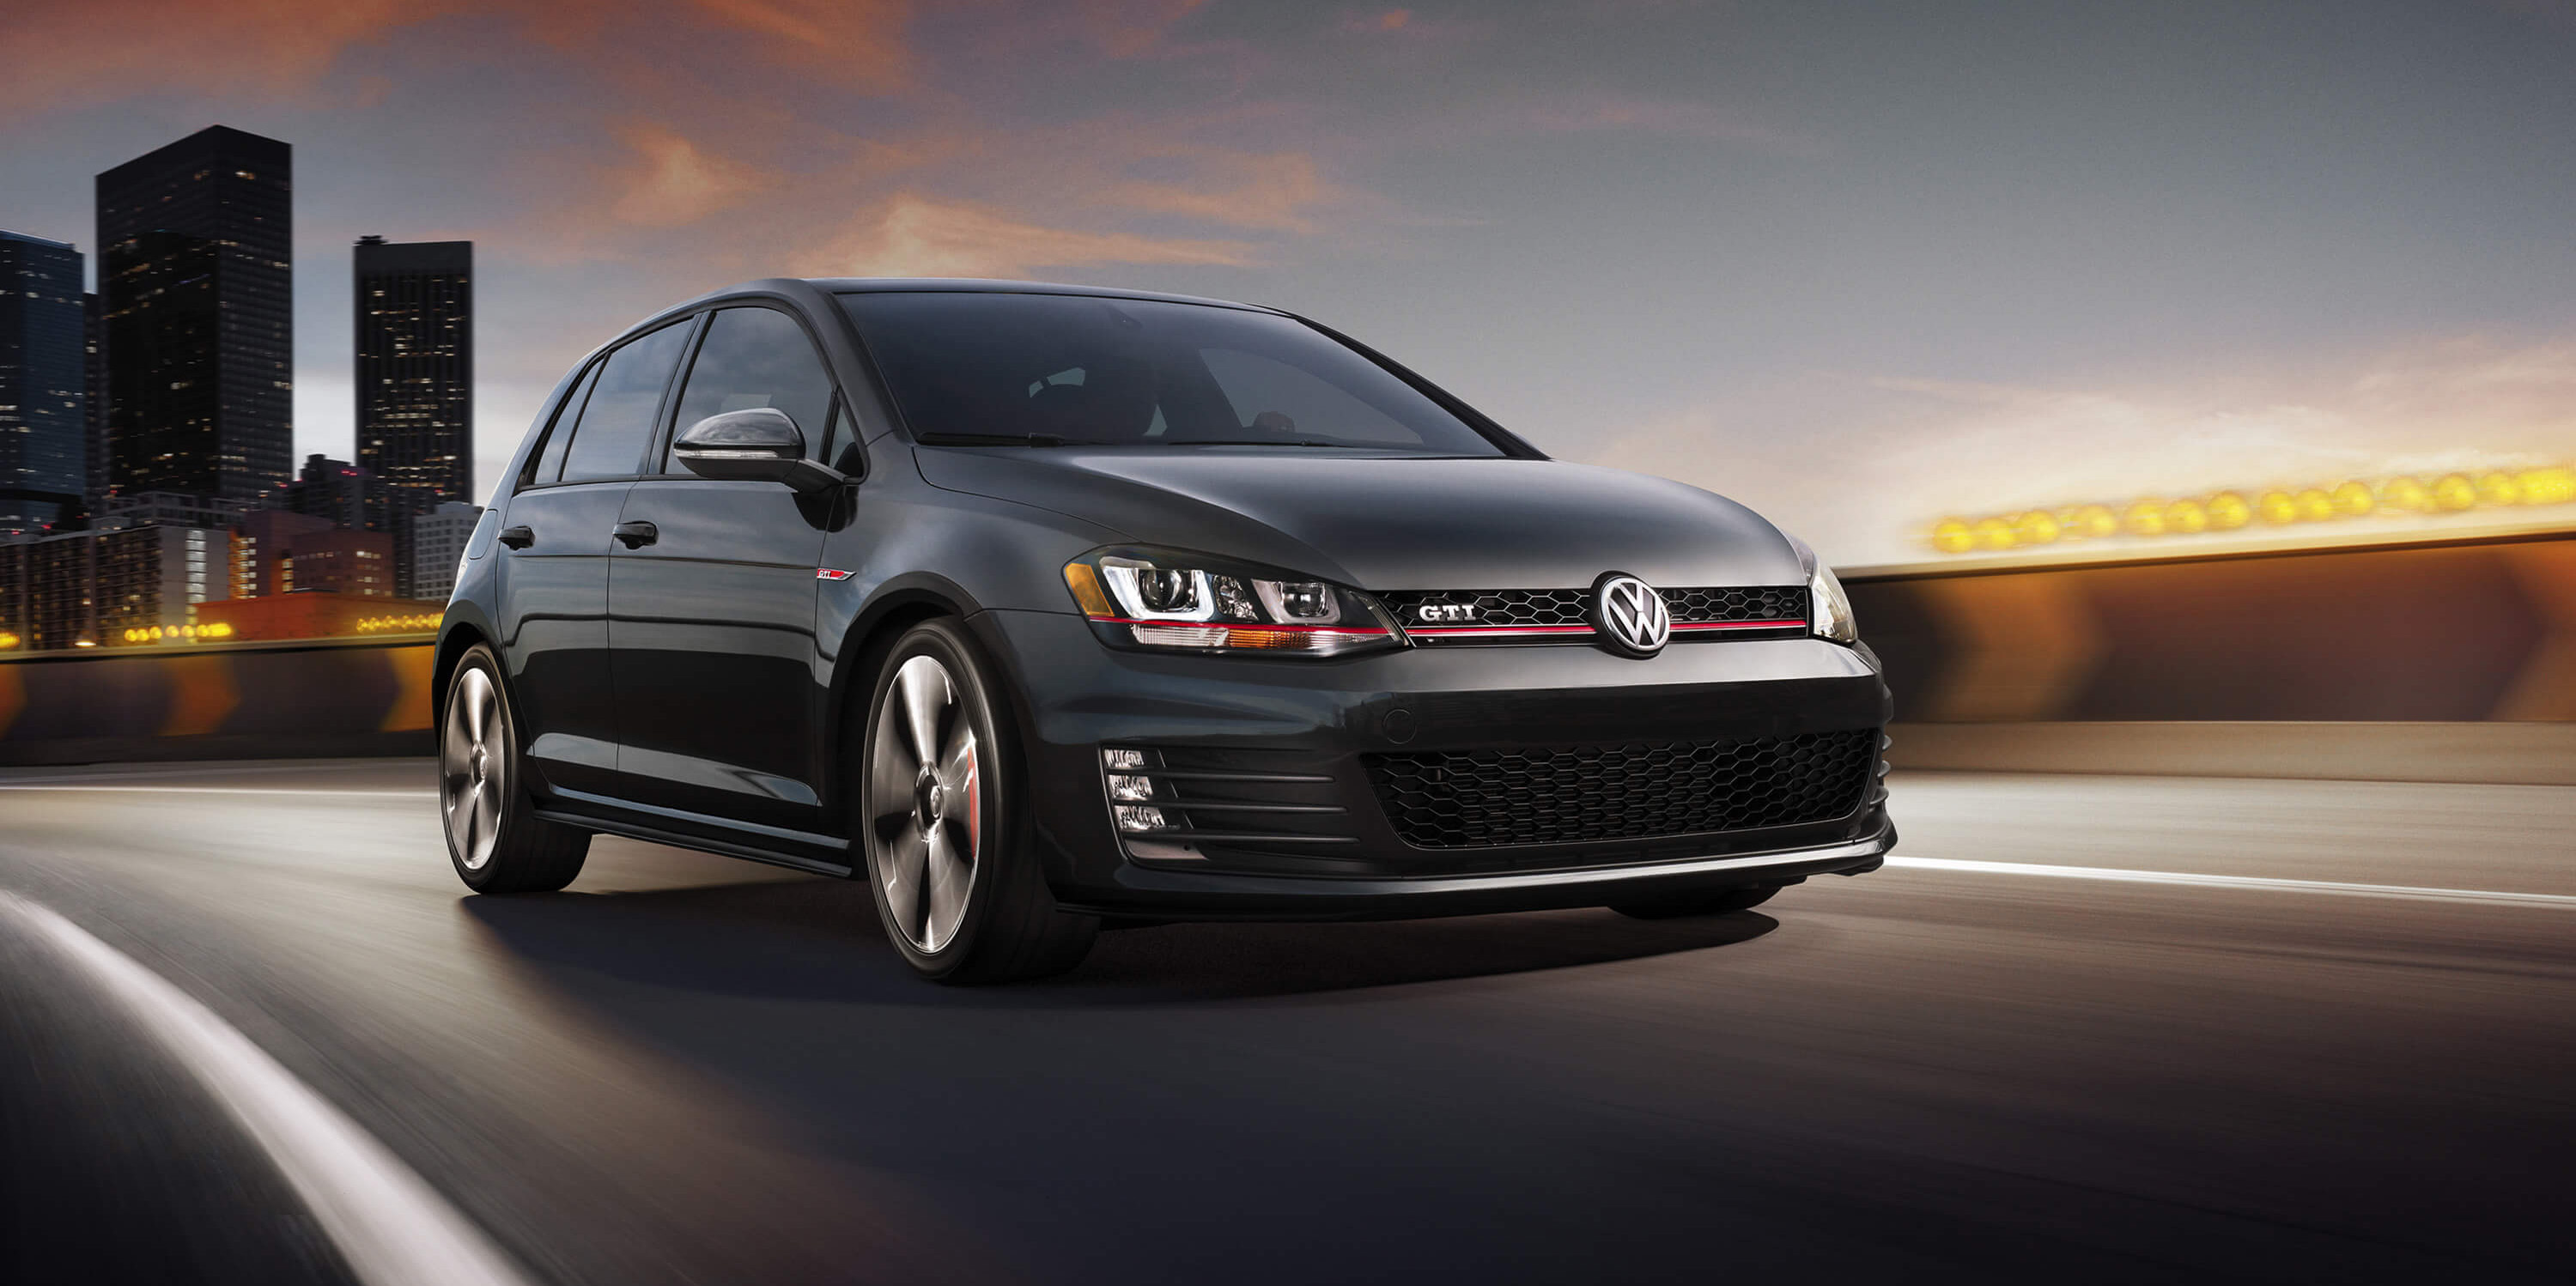 New Vw Golf Gti Lease Deals Near Boston Ma Quirk Vw Braintree Ma